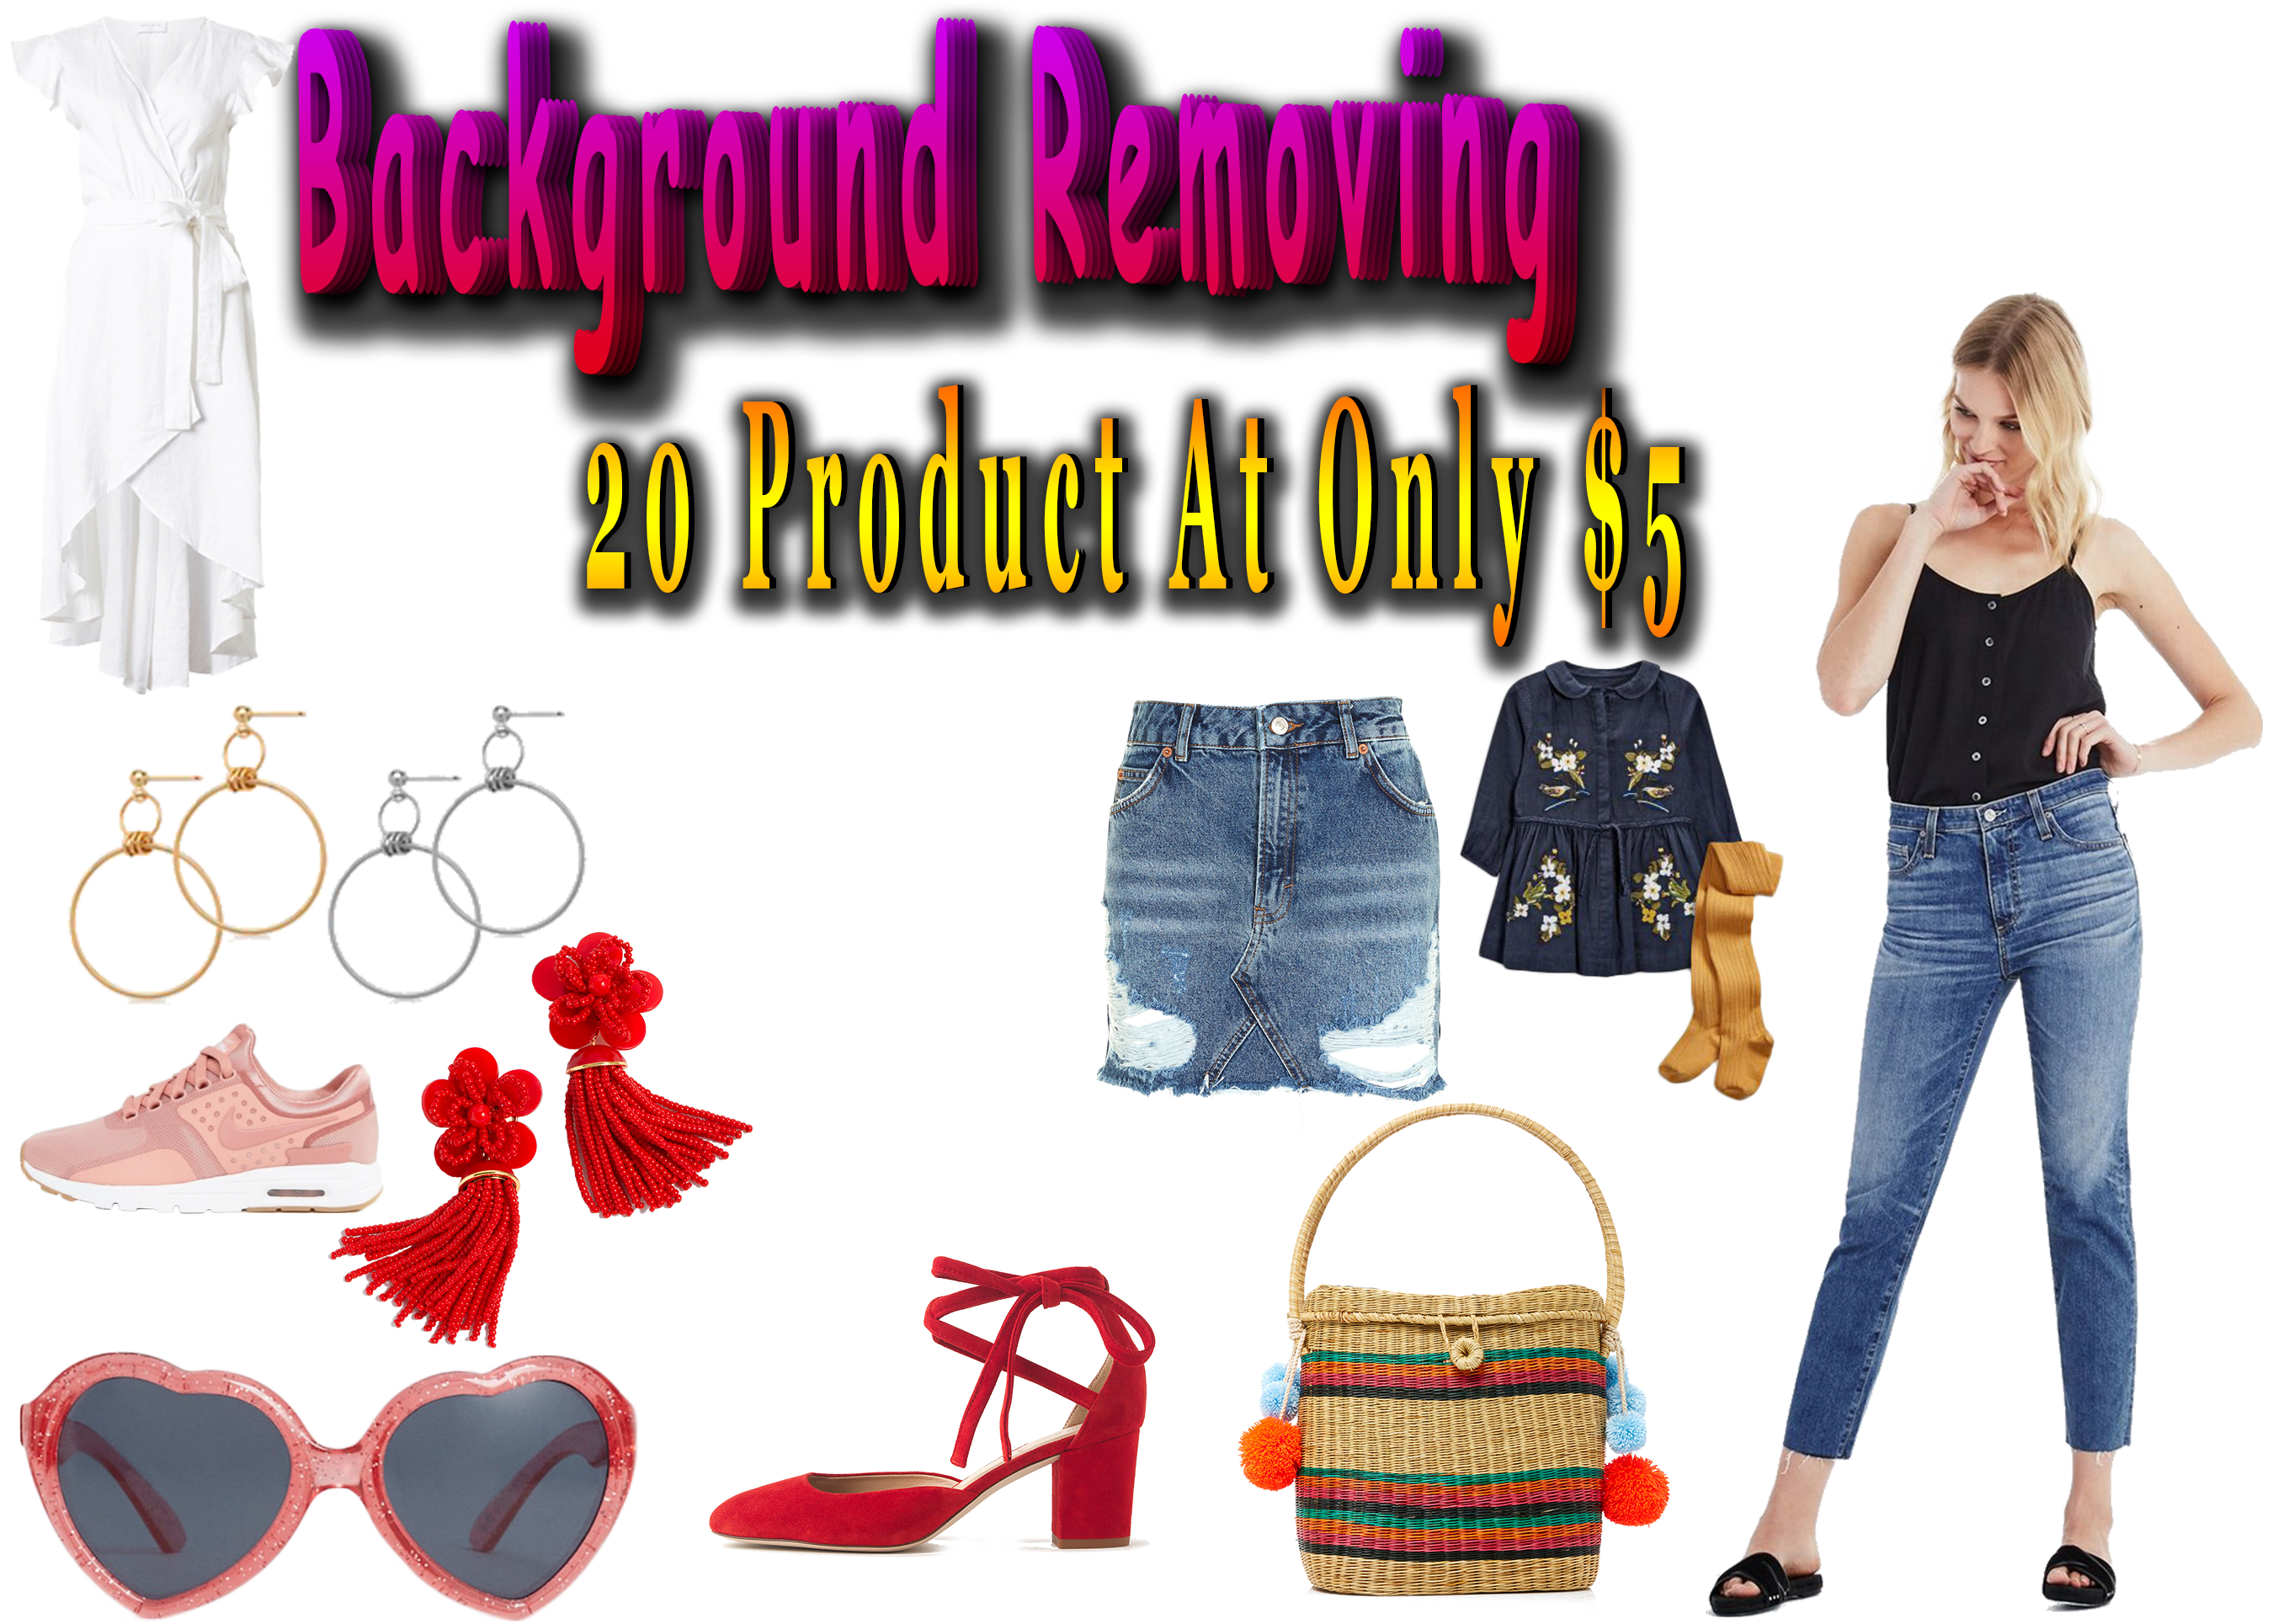 I will make your photo background transparent